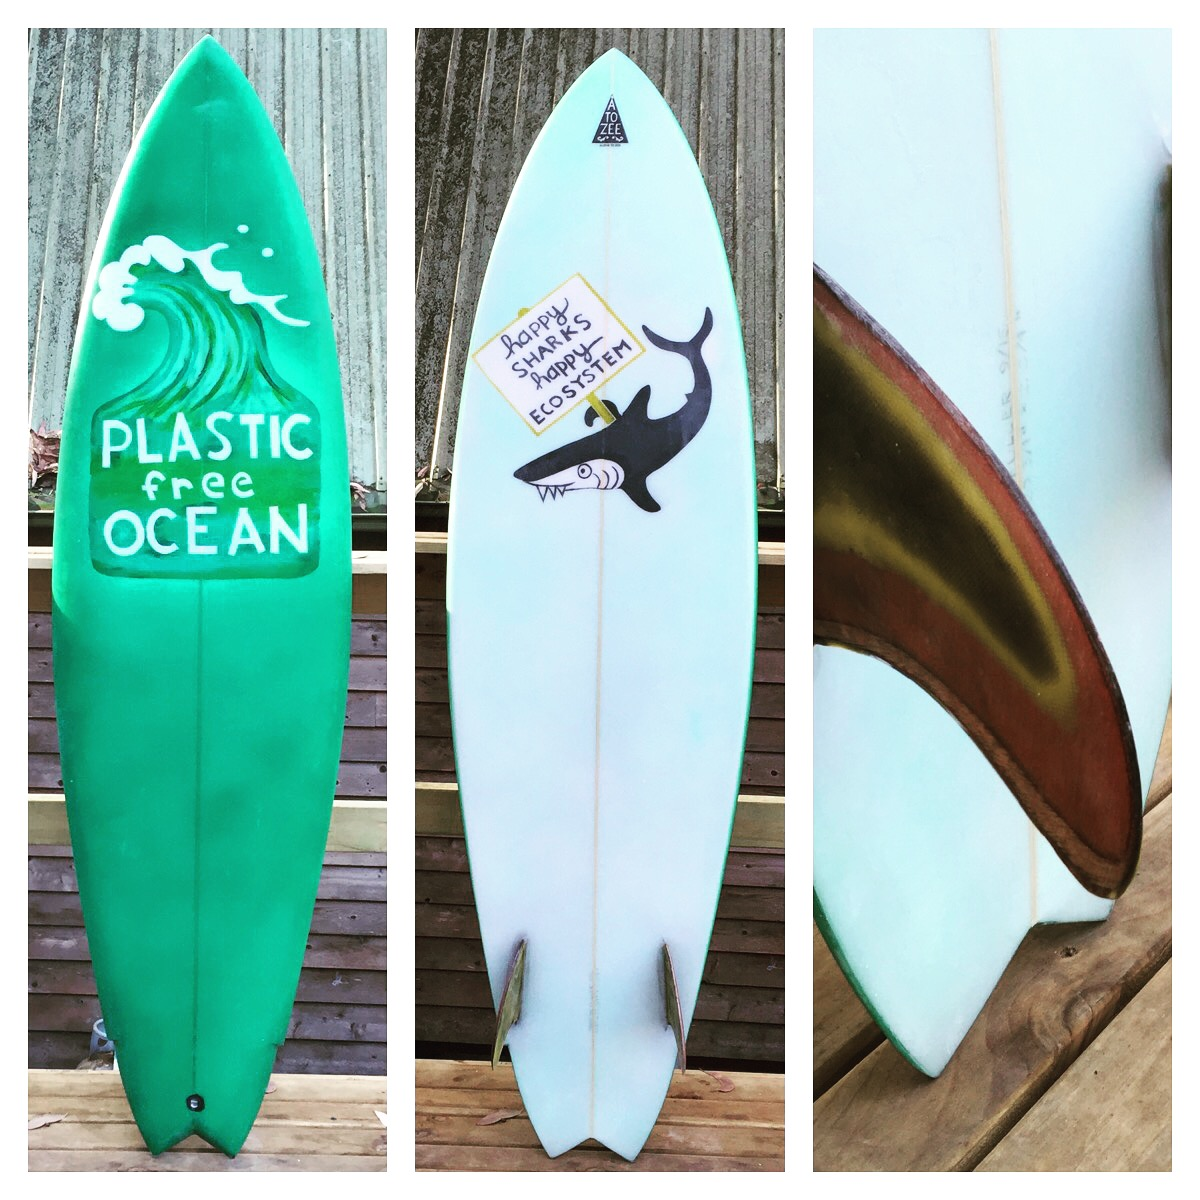 Model 12- Plastic Free Ocean twin fin